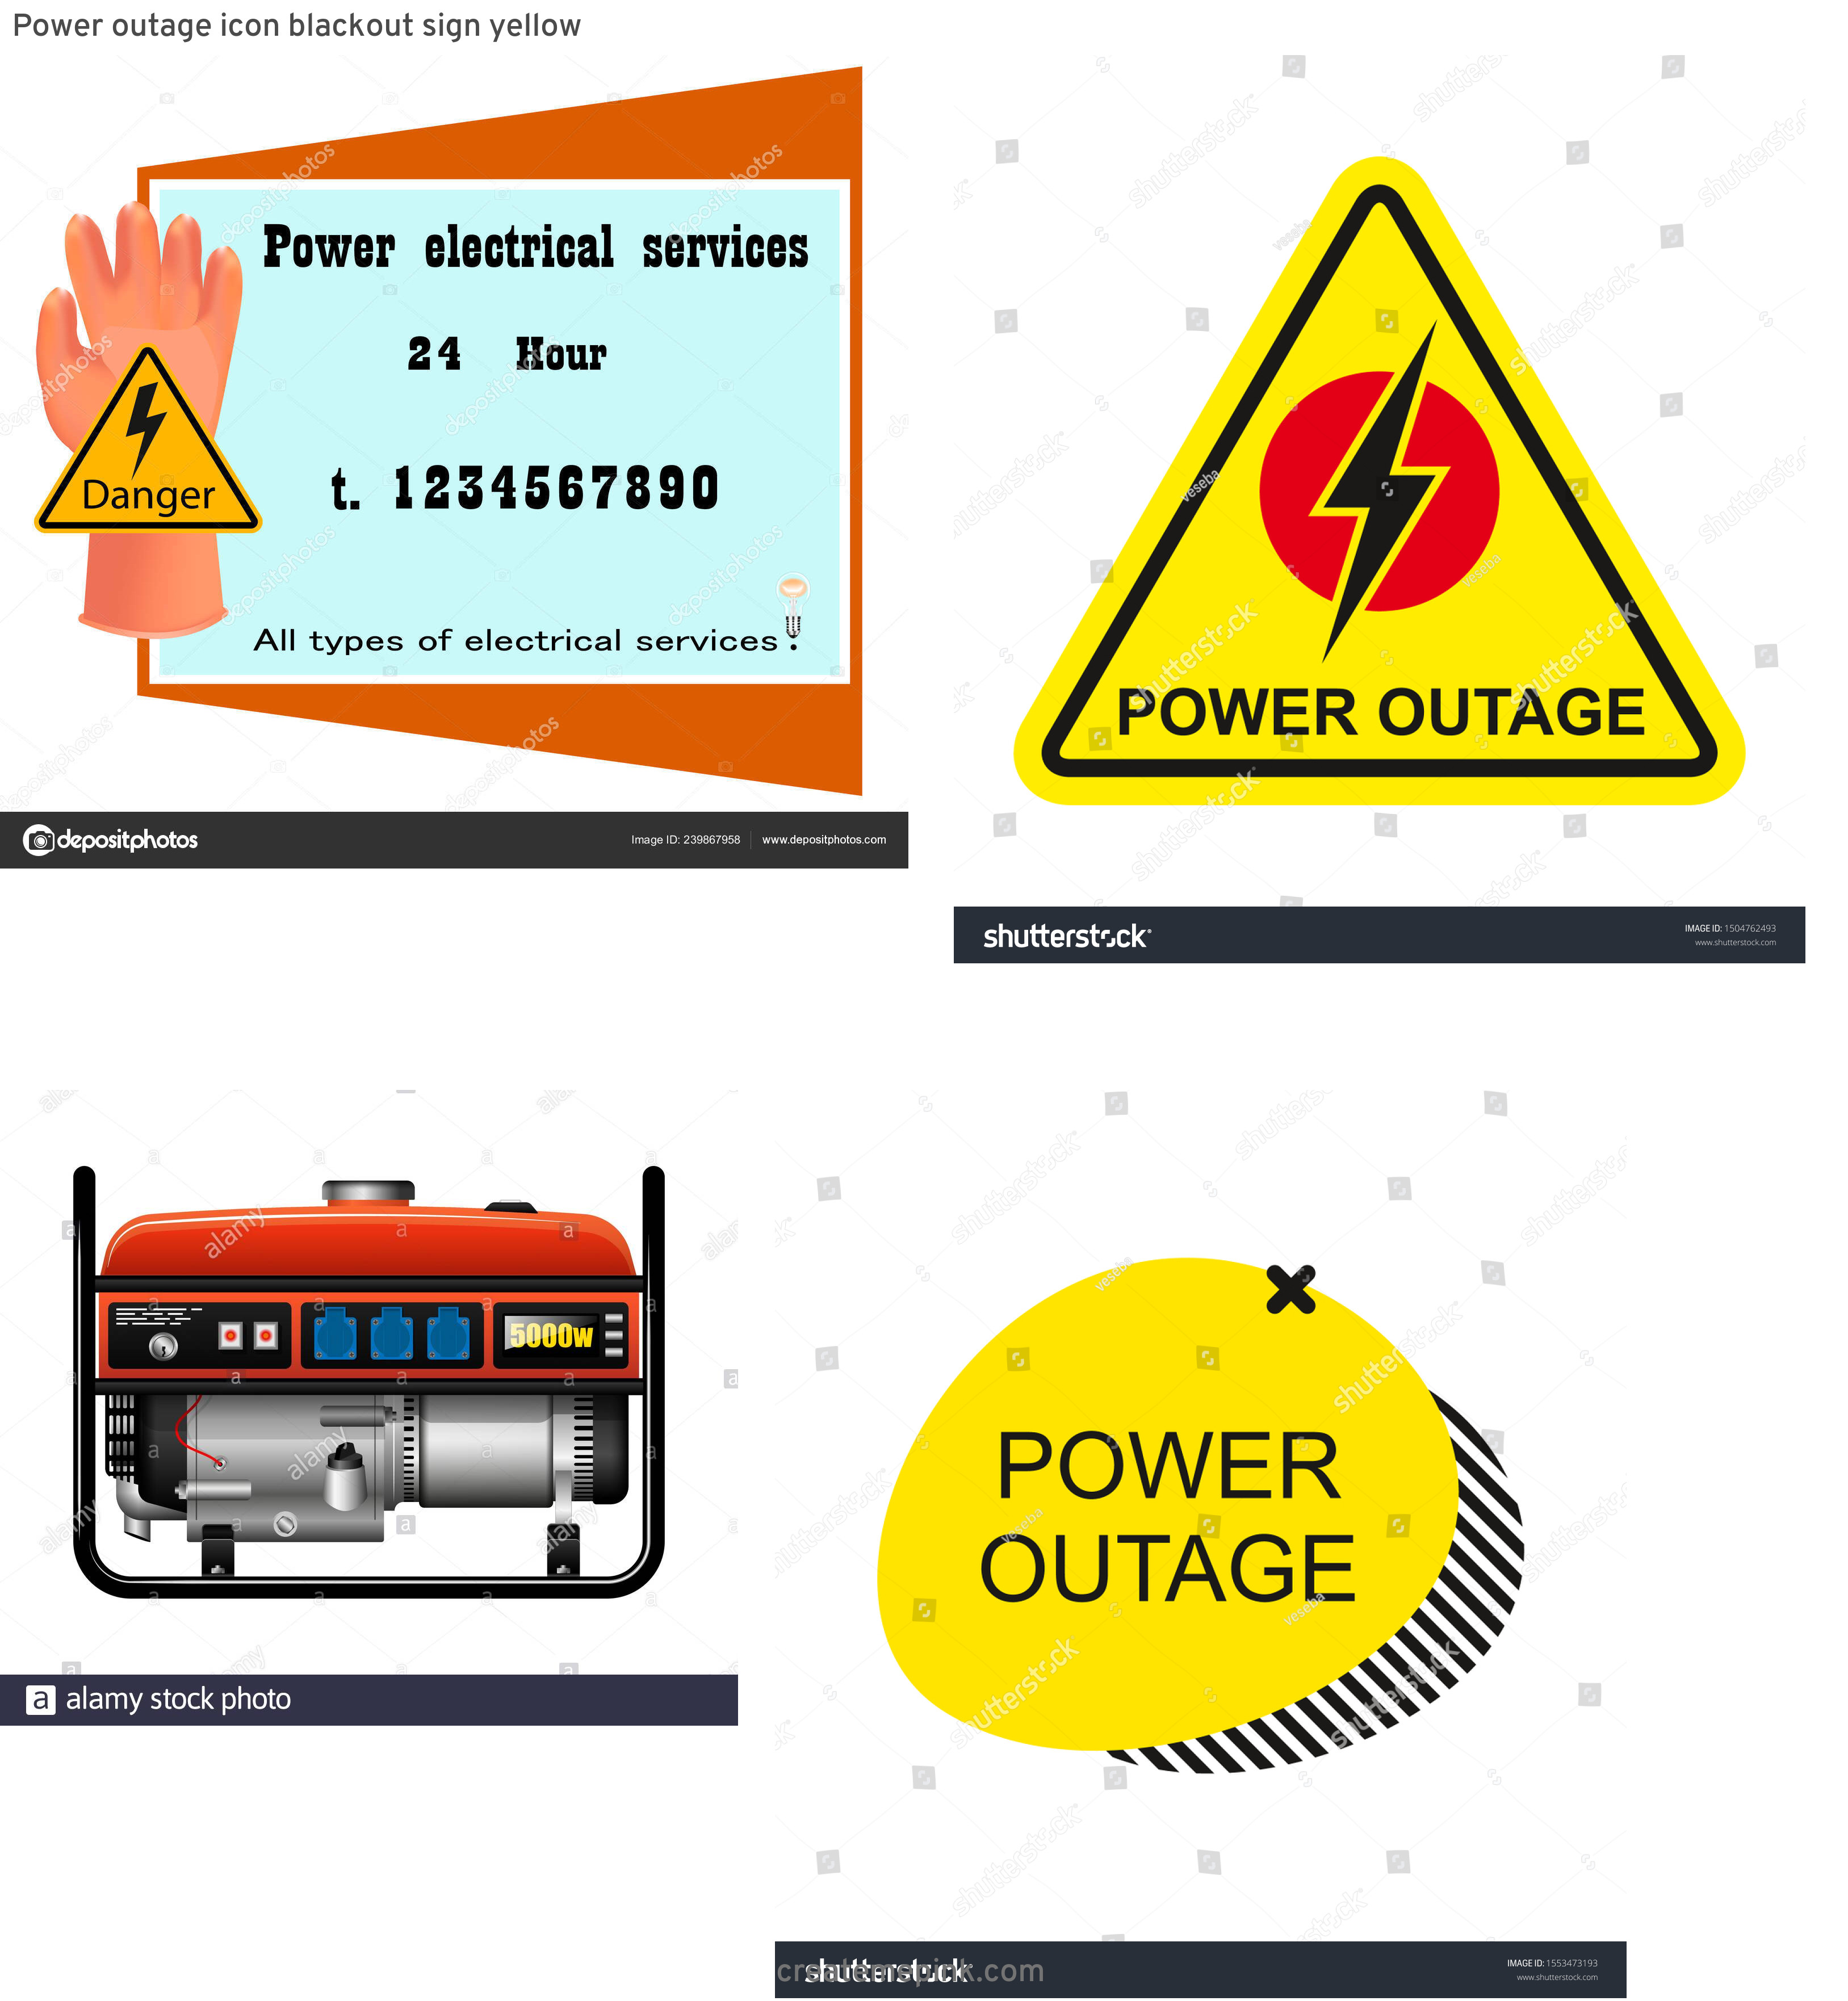 Vector Power Outage: Power Outage Icon Blackout Sign Yellow